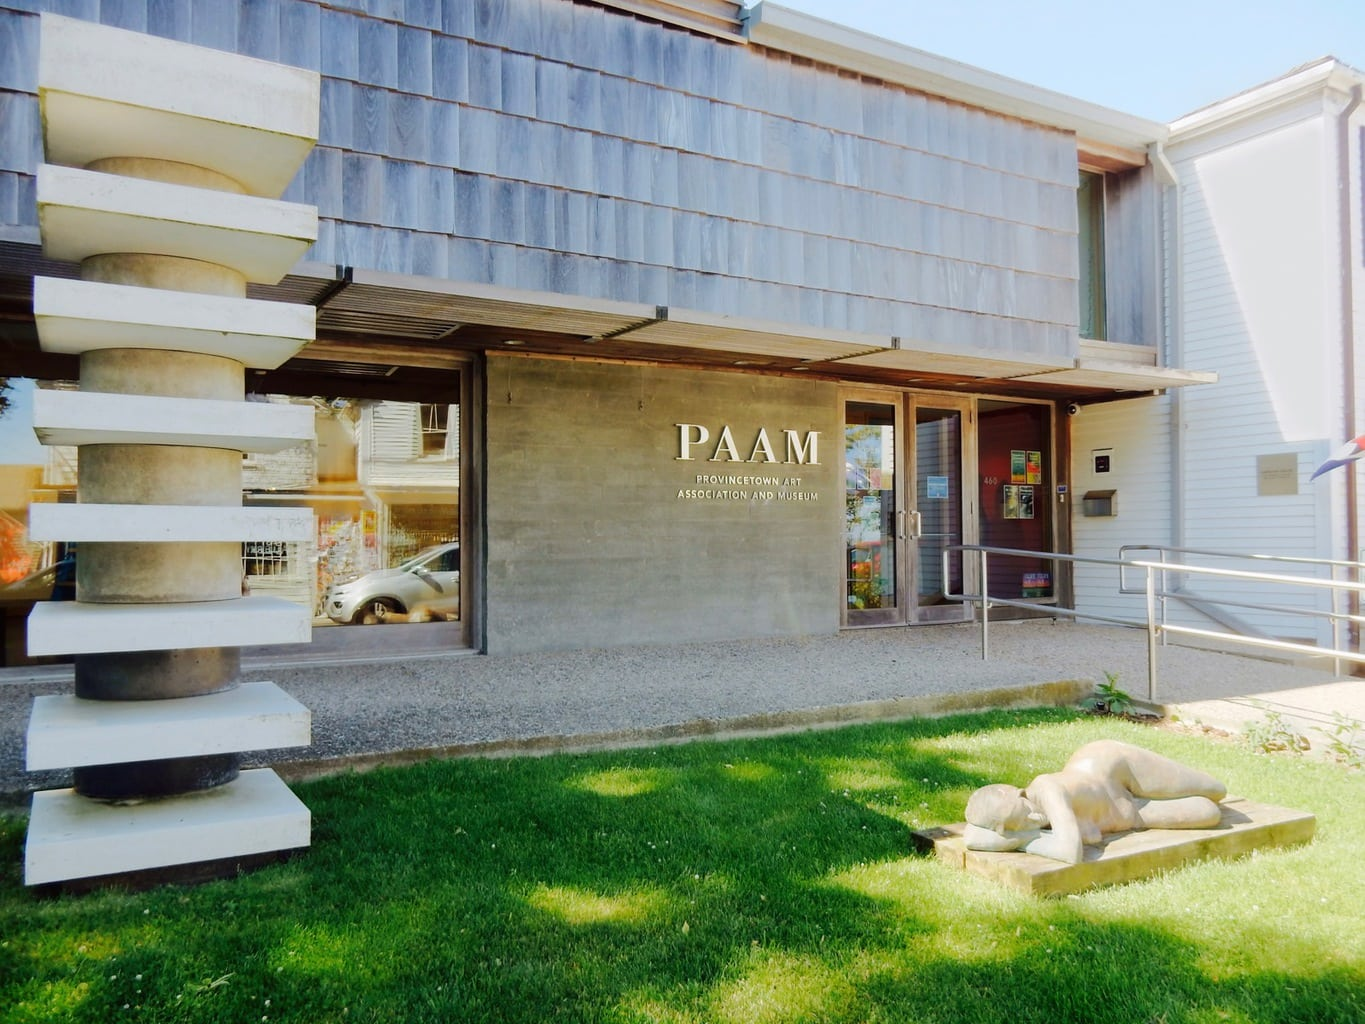 PAAM, Provincetown Art Association and Museum